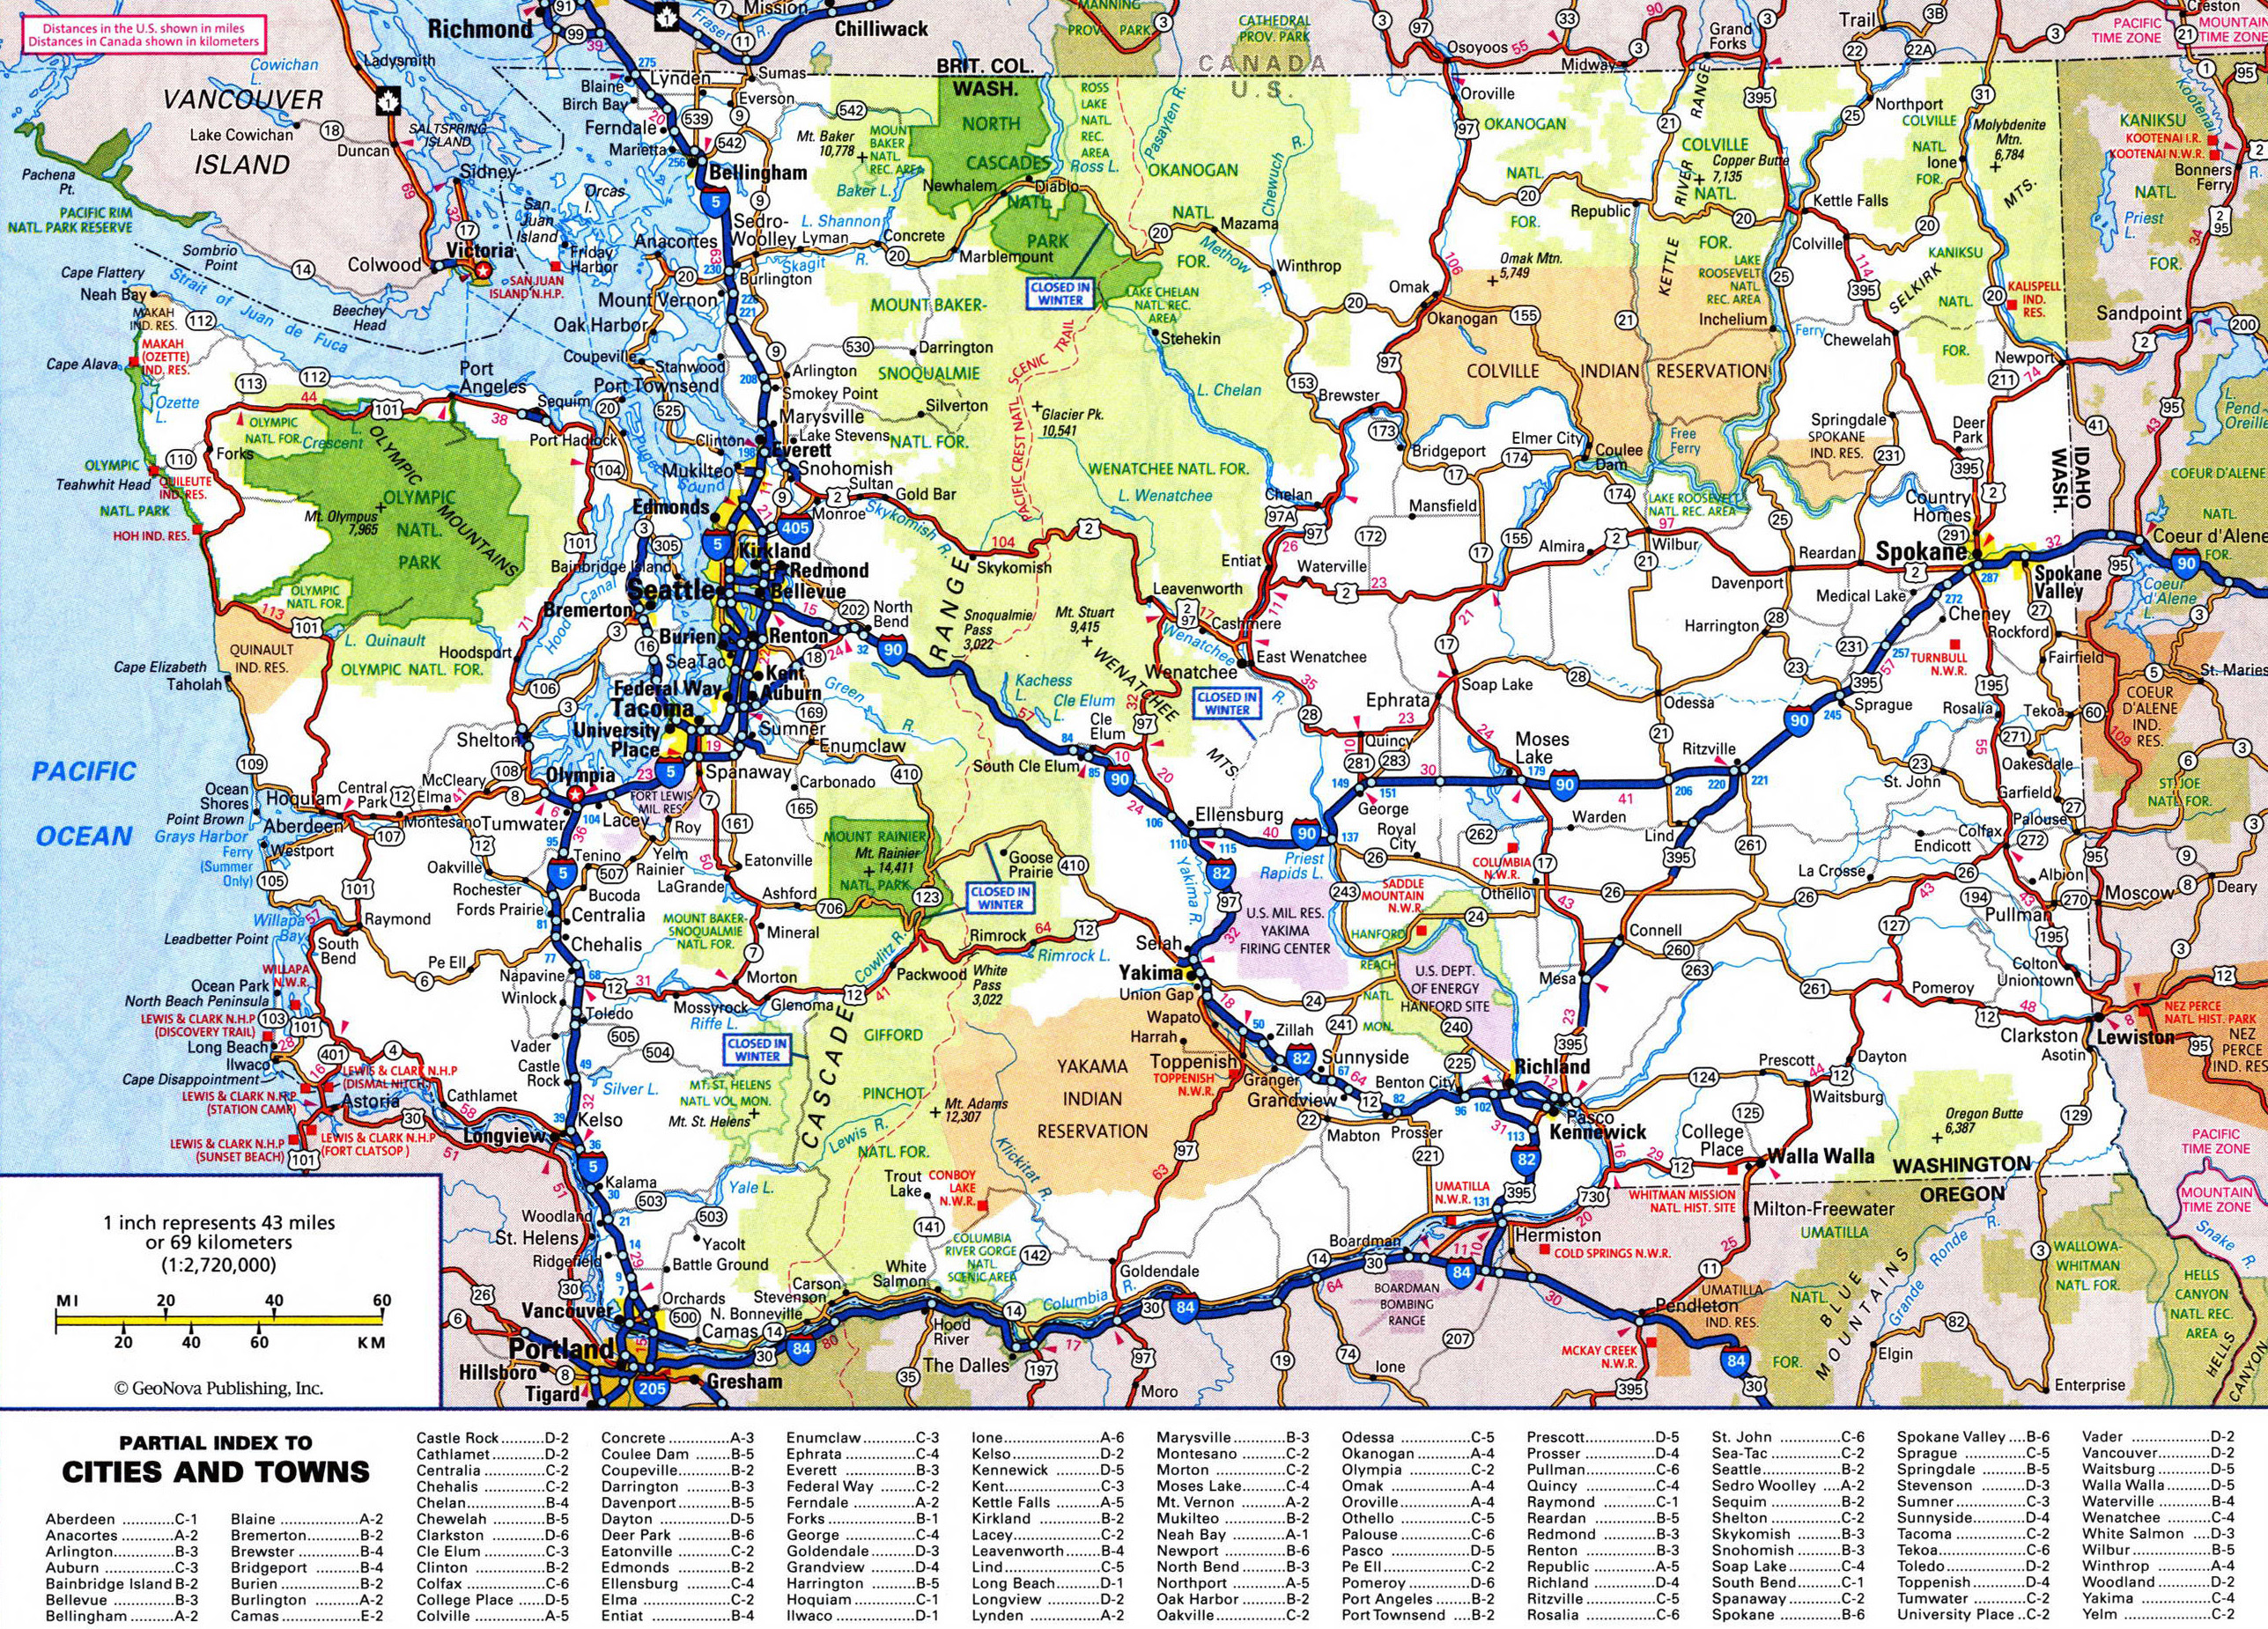 Picture of: Large Detailed Roads And Highways Map Of Washington State With All Cities And National Parks Washington State Usa Maps Of The Usa Maps Collection Of The United States Of America